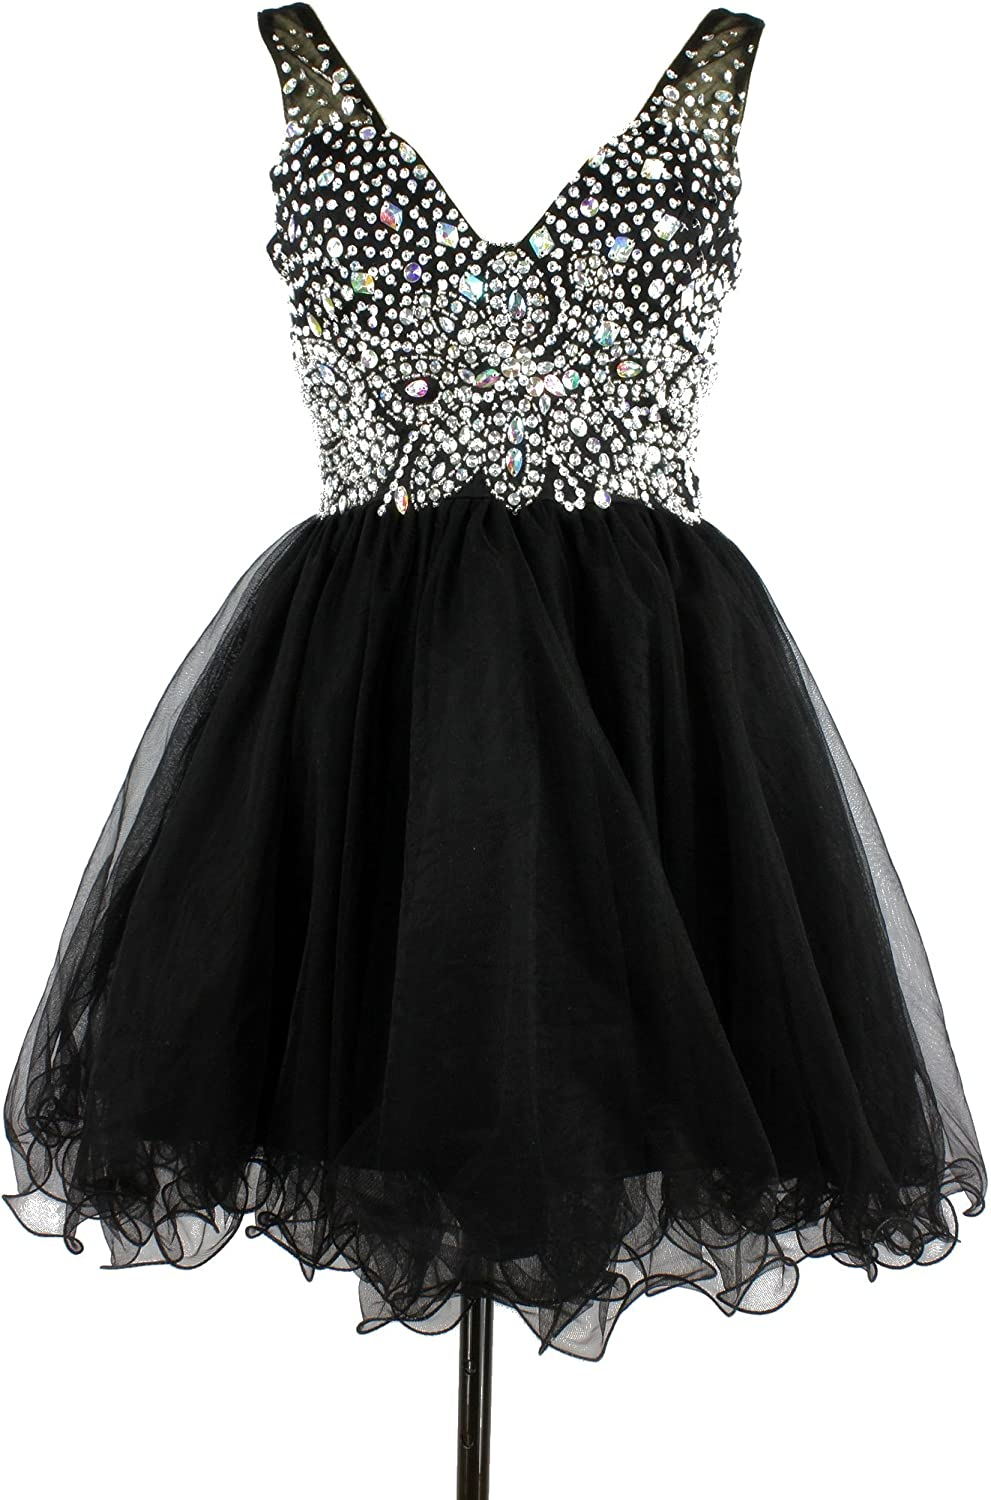 CharmingBridal Short Ball Gown Crystal Prom Dress Black Cocktail Party Dress